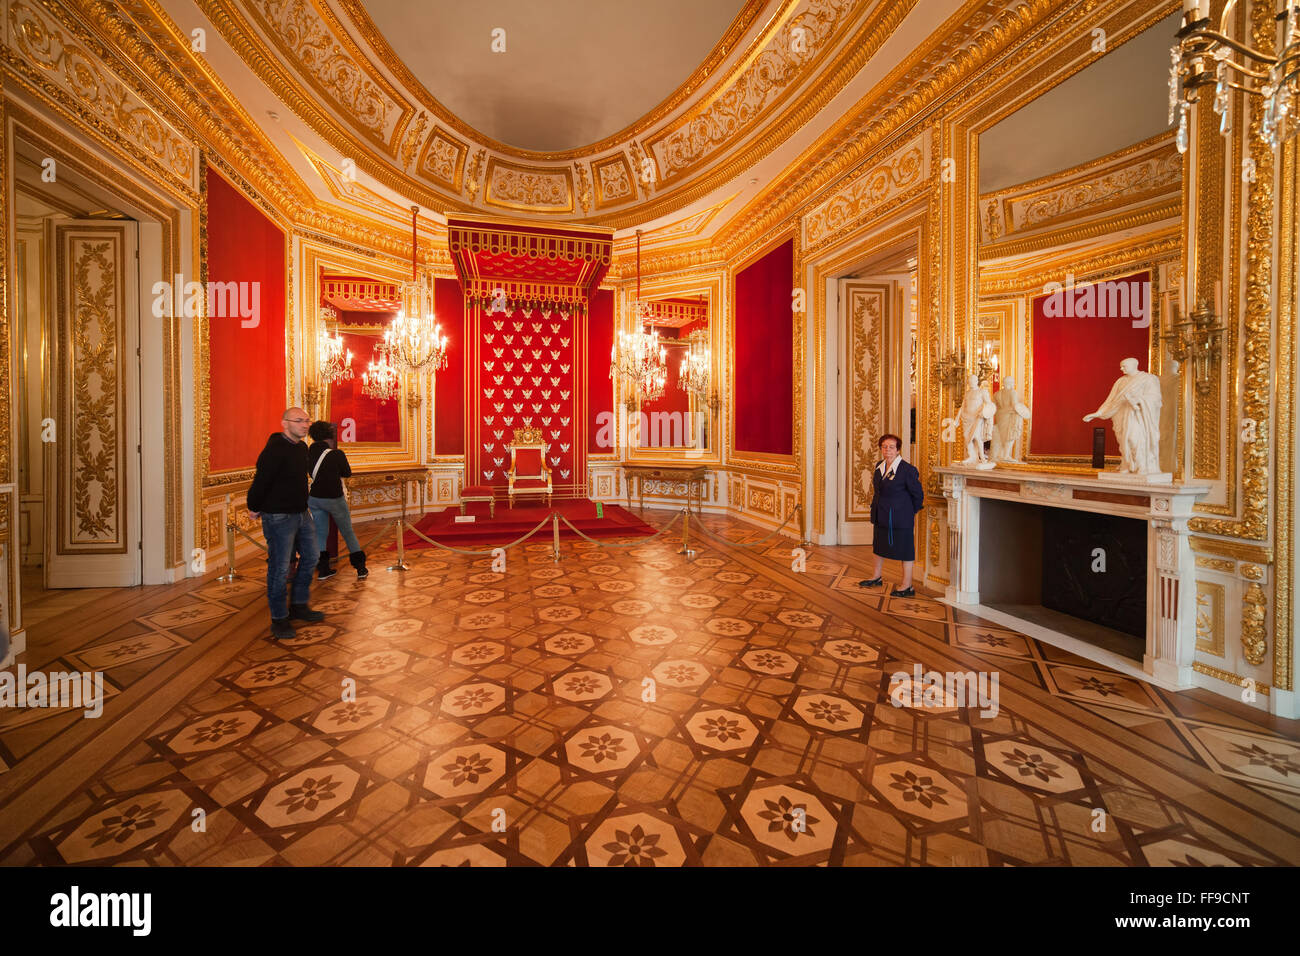 royal castle warsaw interior stock photos & royal castle warsaw